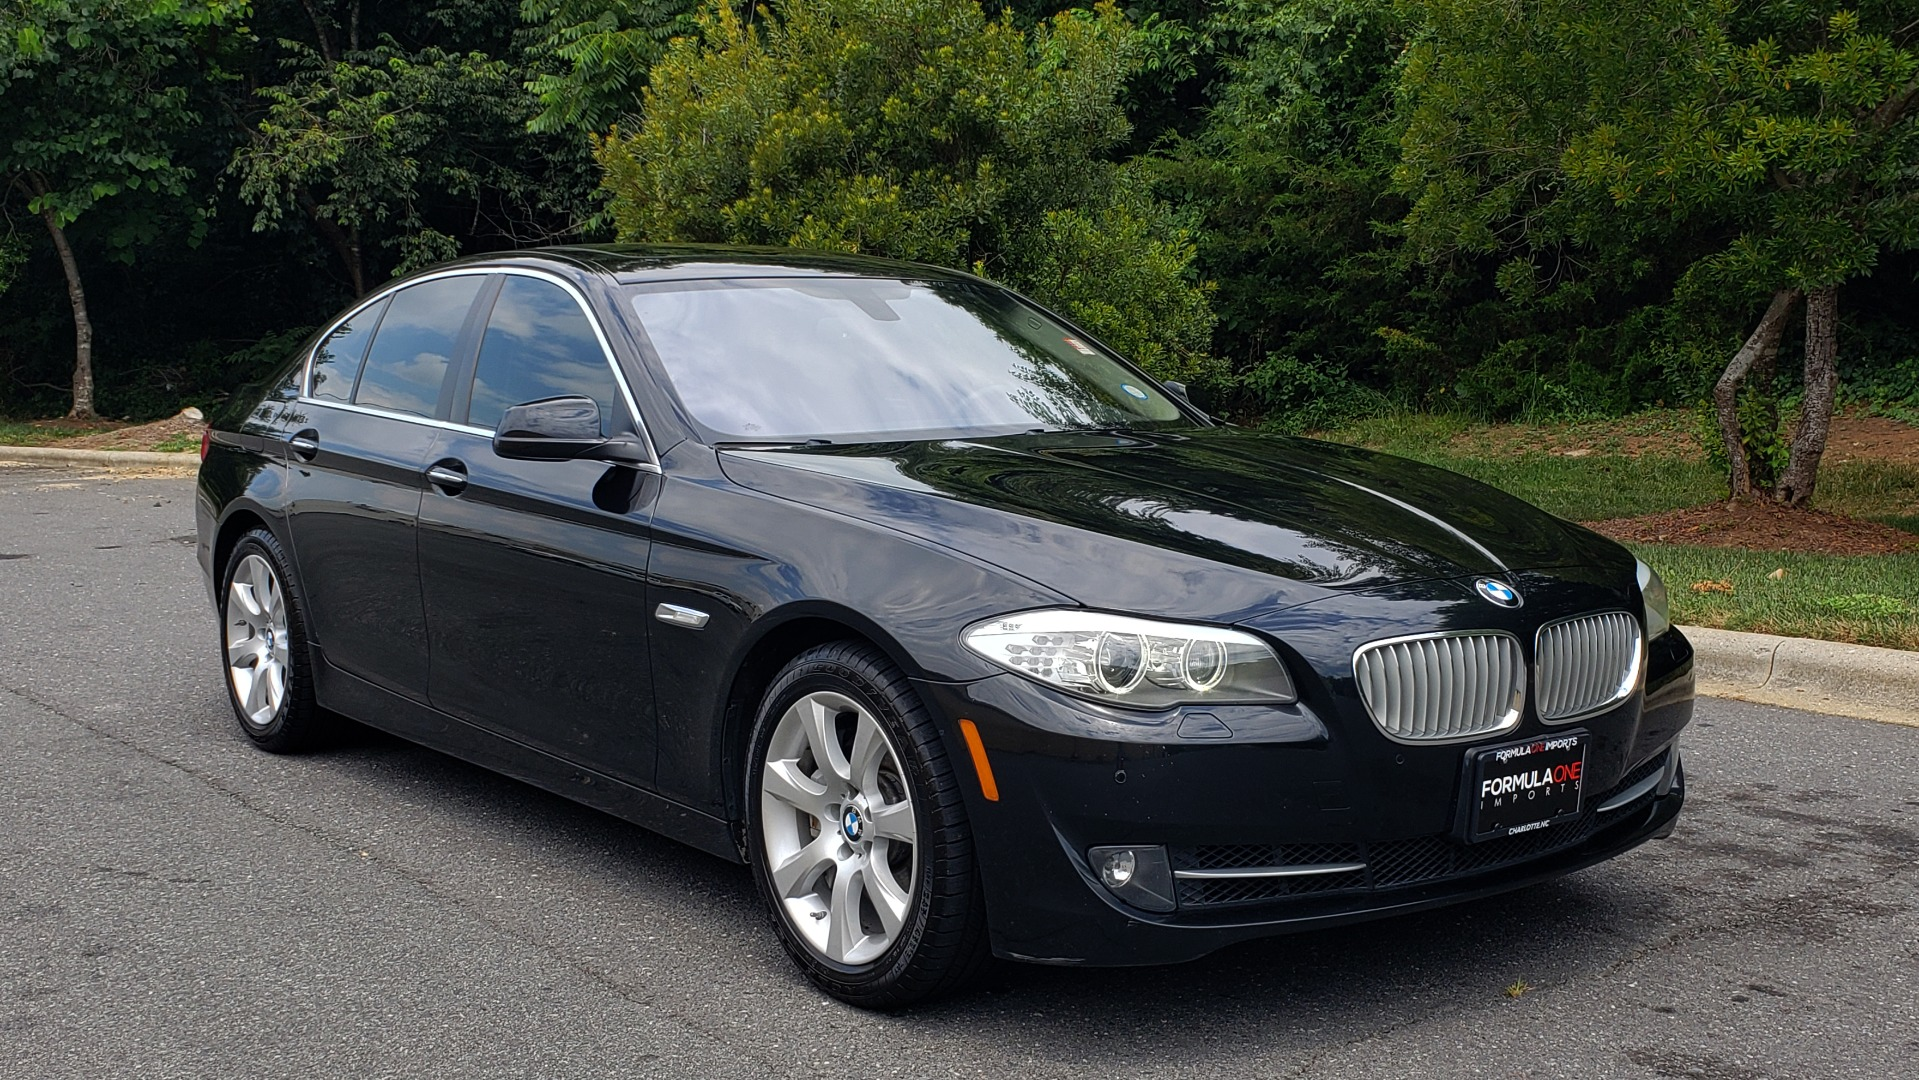 Used 2013 BMW 5 SERIES 550I XDRIVE LUX PKG / EXEC / COLD WTHR / NAV / SUNROOF / REARVIEW for sale $17,995 at Formula Imports in Charlotte NC 28227 4